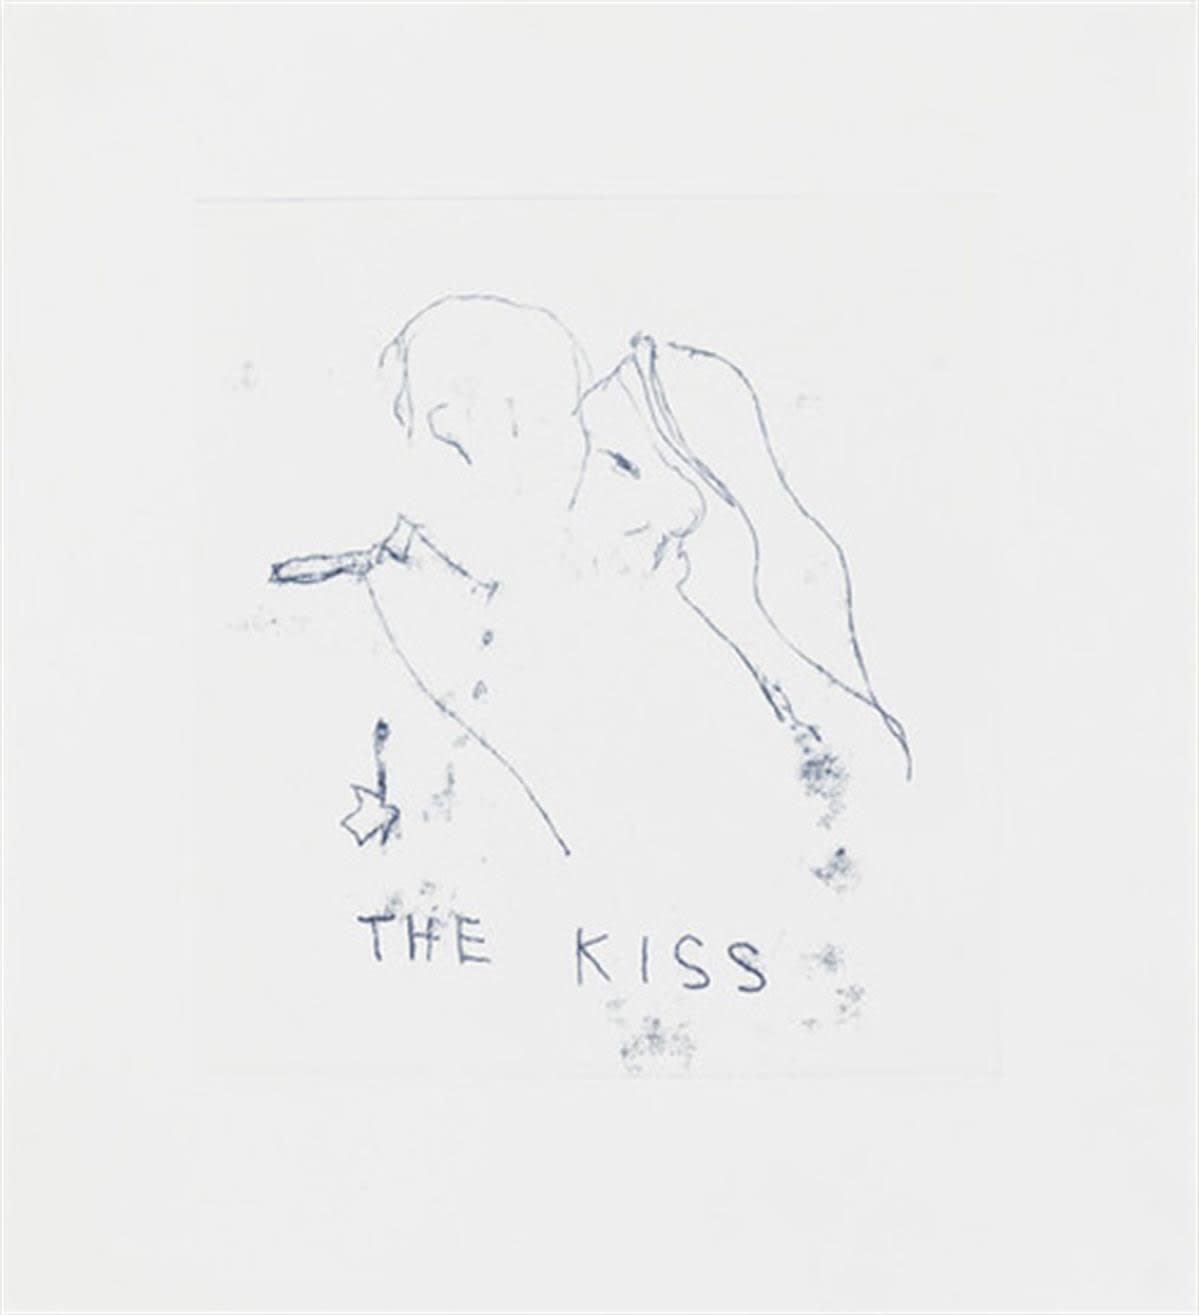 Tracey Emin, The Kiss